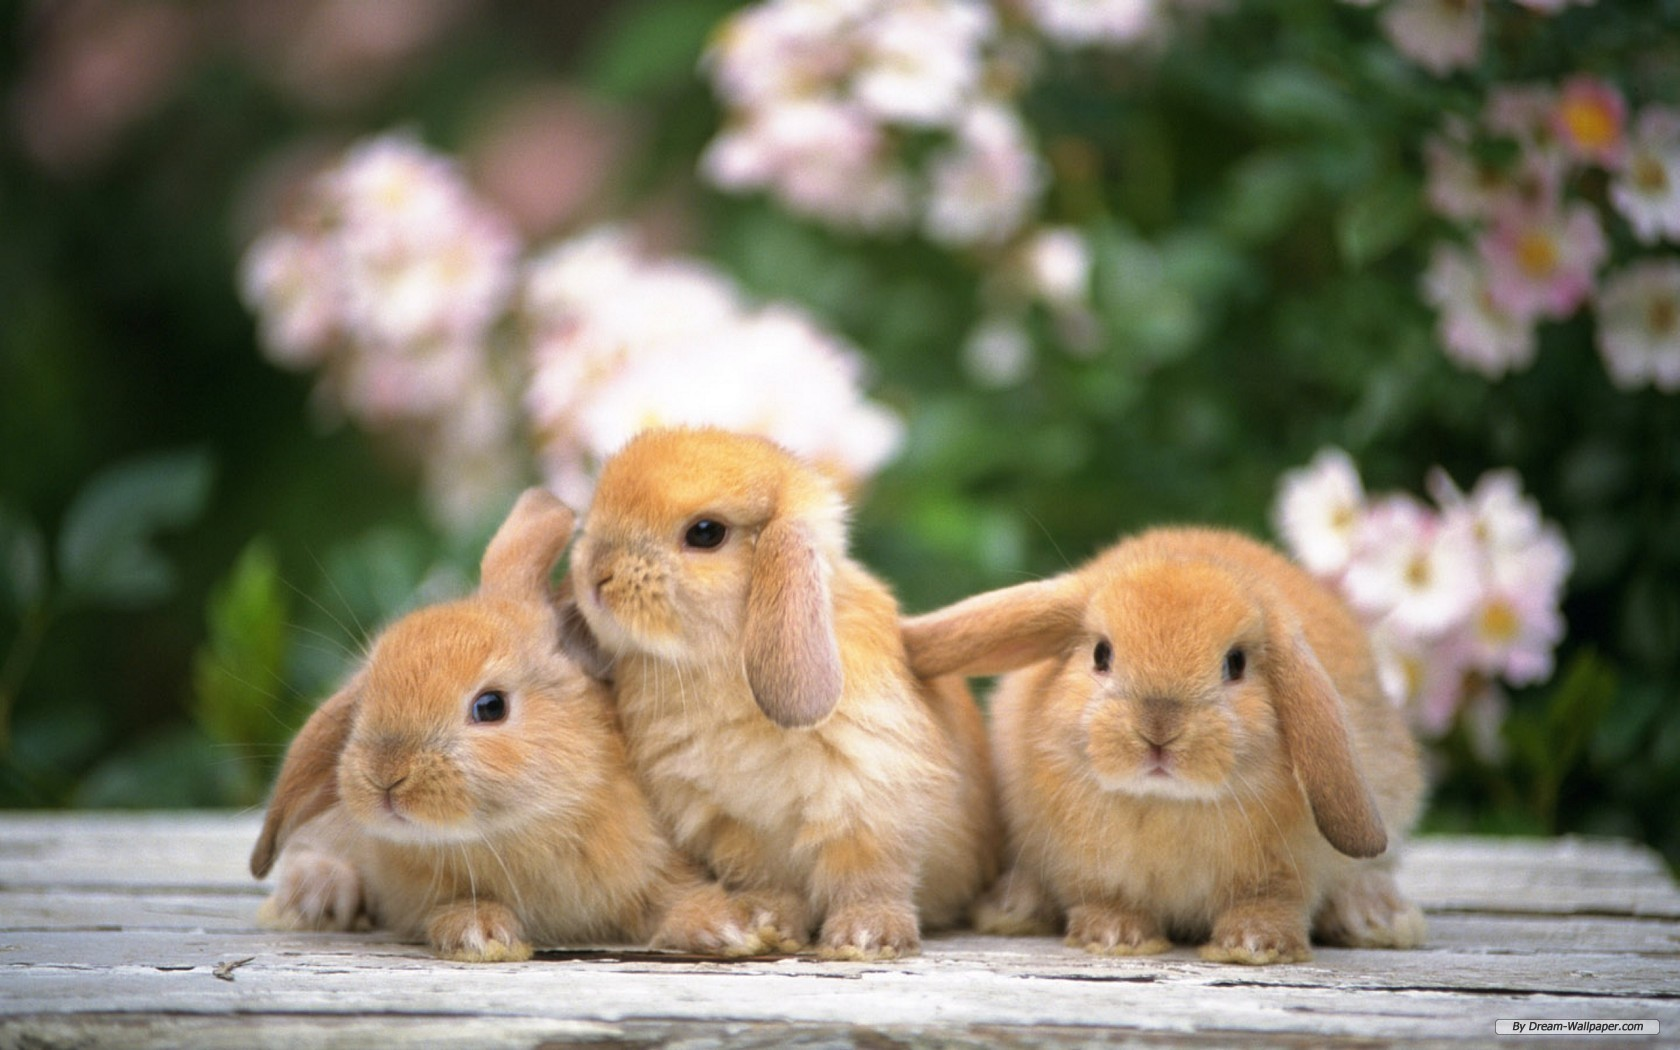 Cute Rabbits Animals Wallpaper Free